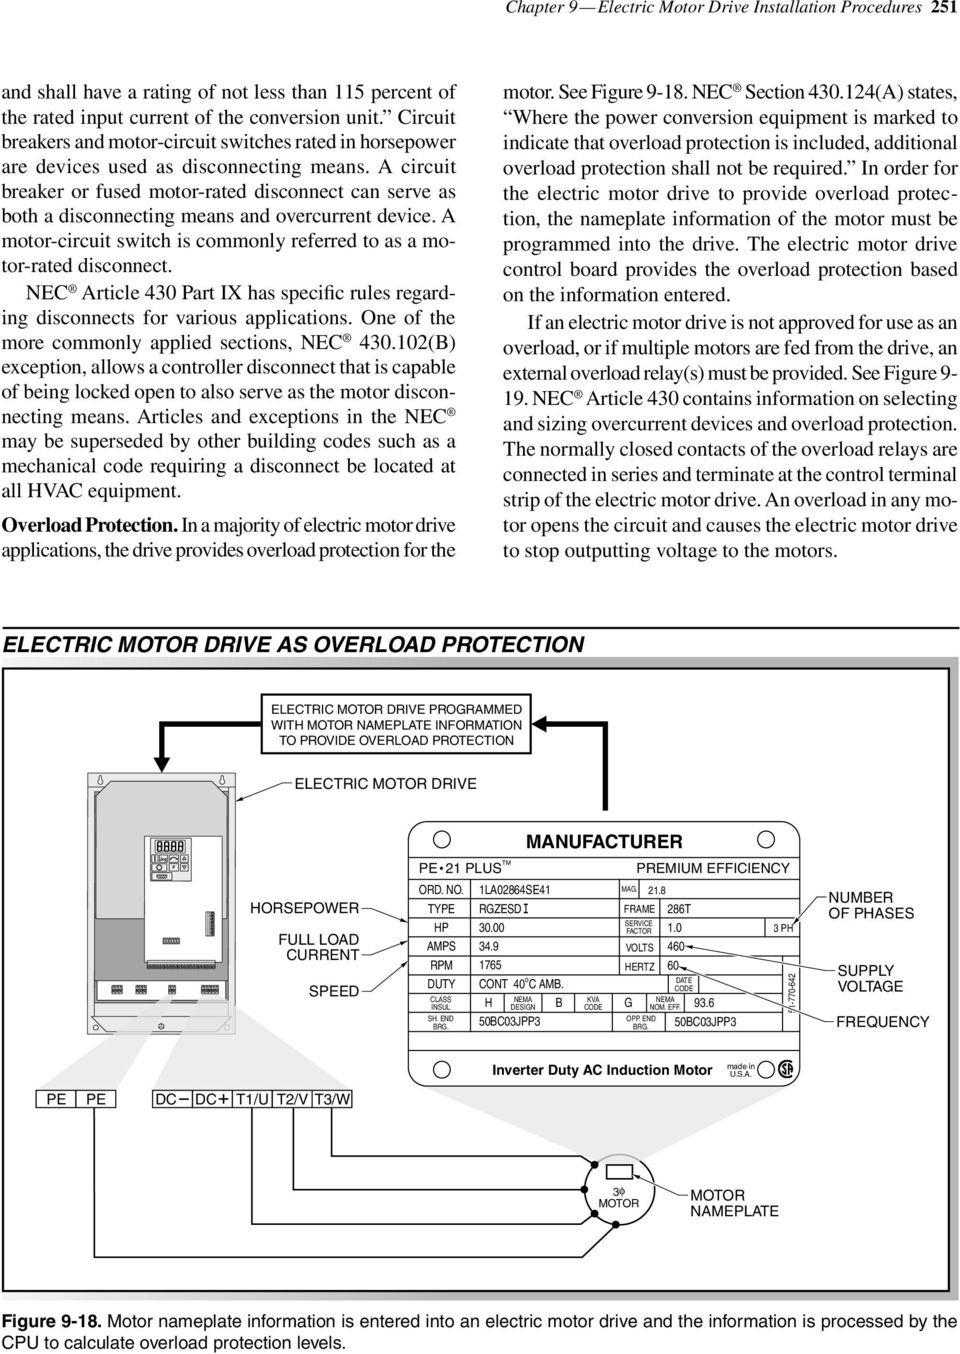 Installation Considerations Pdf Name Platw 480 Motor Wiring Diagram A Circuit Breaker Or Fused Rated Disconnect Can Serve As Both Disconnecting Means